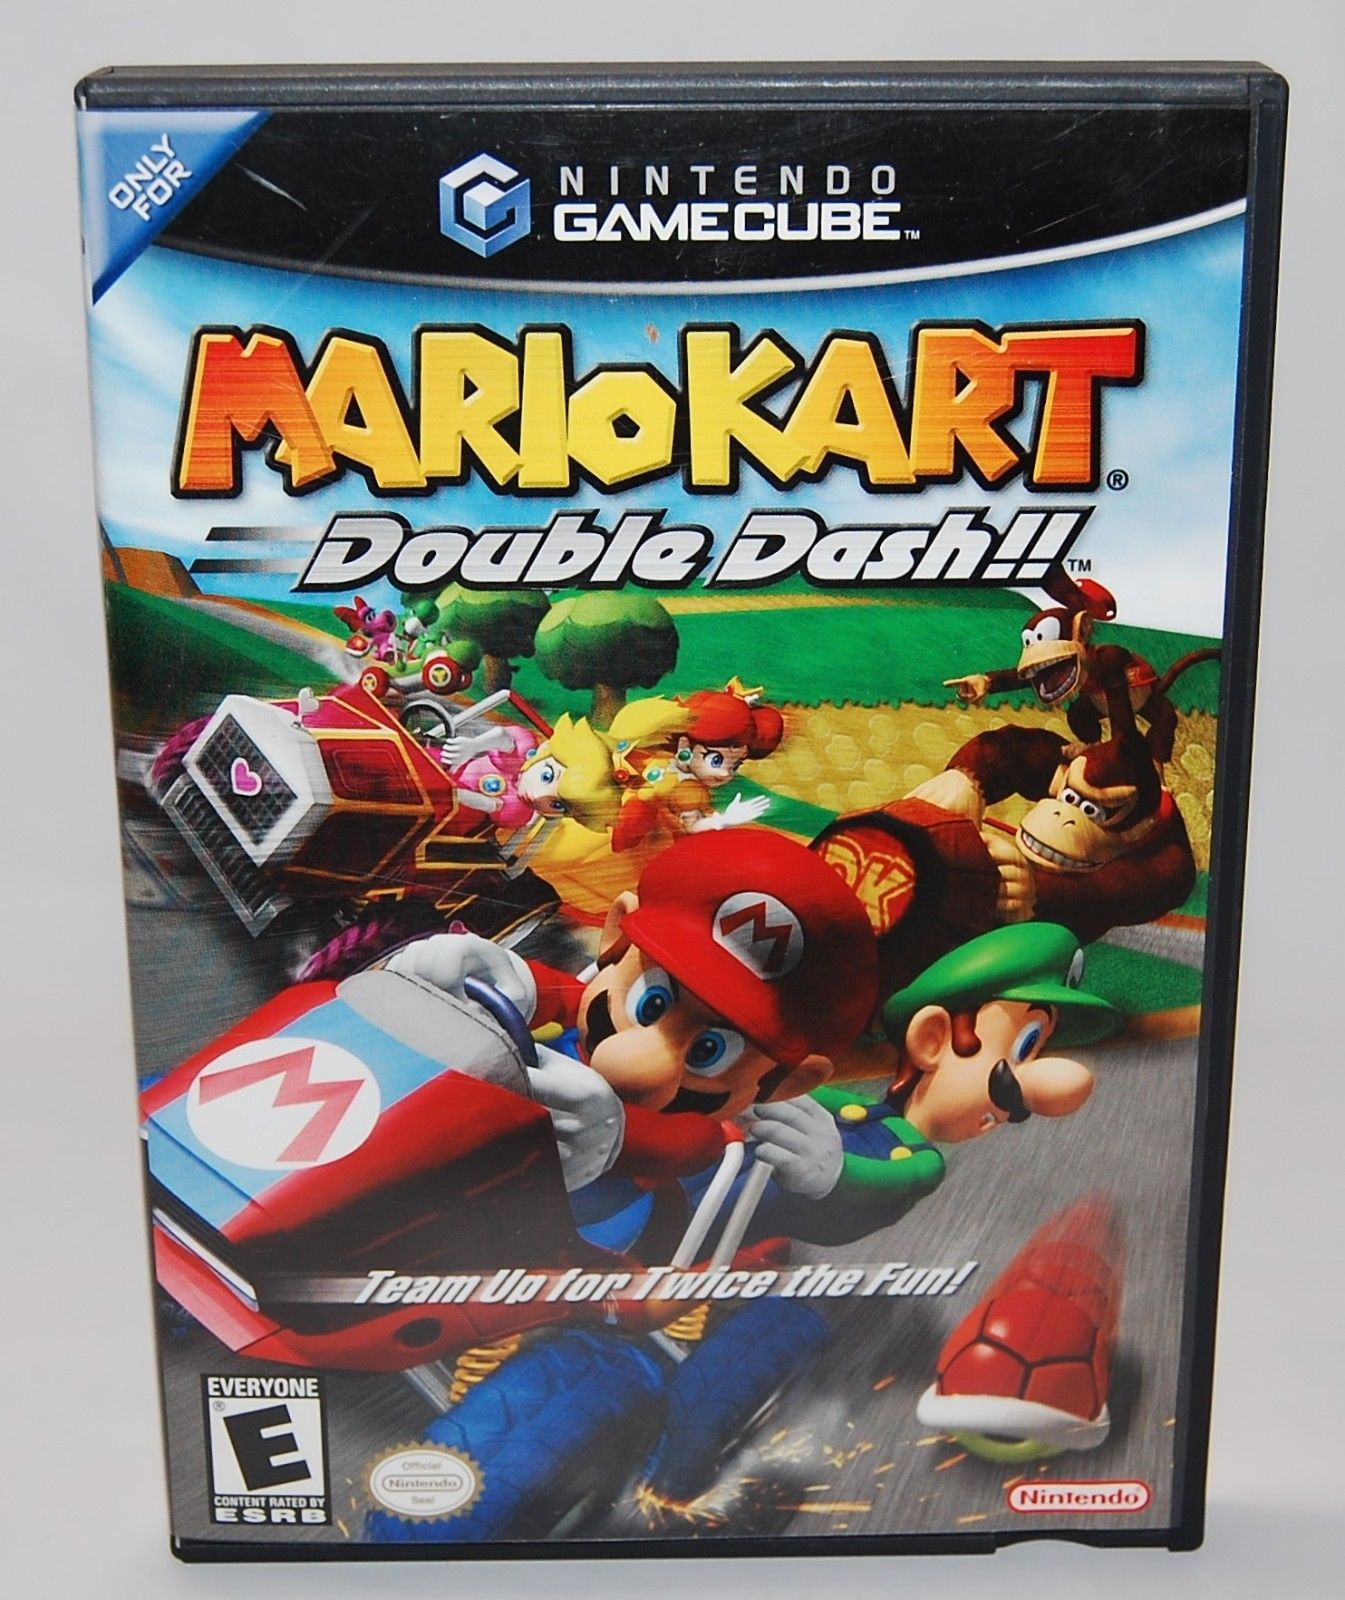 Mario Kart Double Dash Nintendo Gamecube 2003 Complete Cib 49 95 End Date Tuesday May 8 2018 14 30 45 Pdt Buy